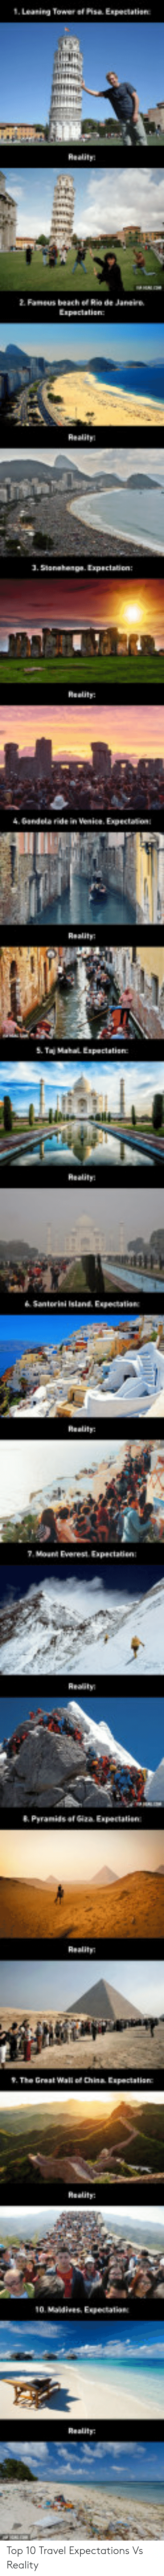 leaning tower: 1. Leaning Tower of Pisa Expectation Top 10 Travel Expectations Vs Reality